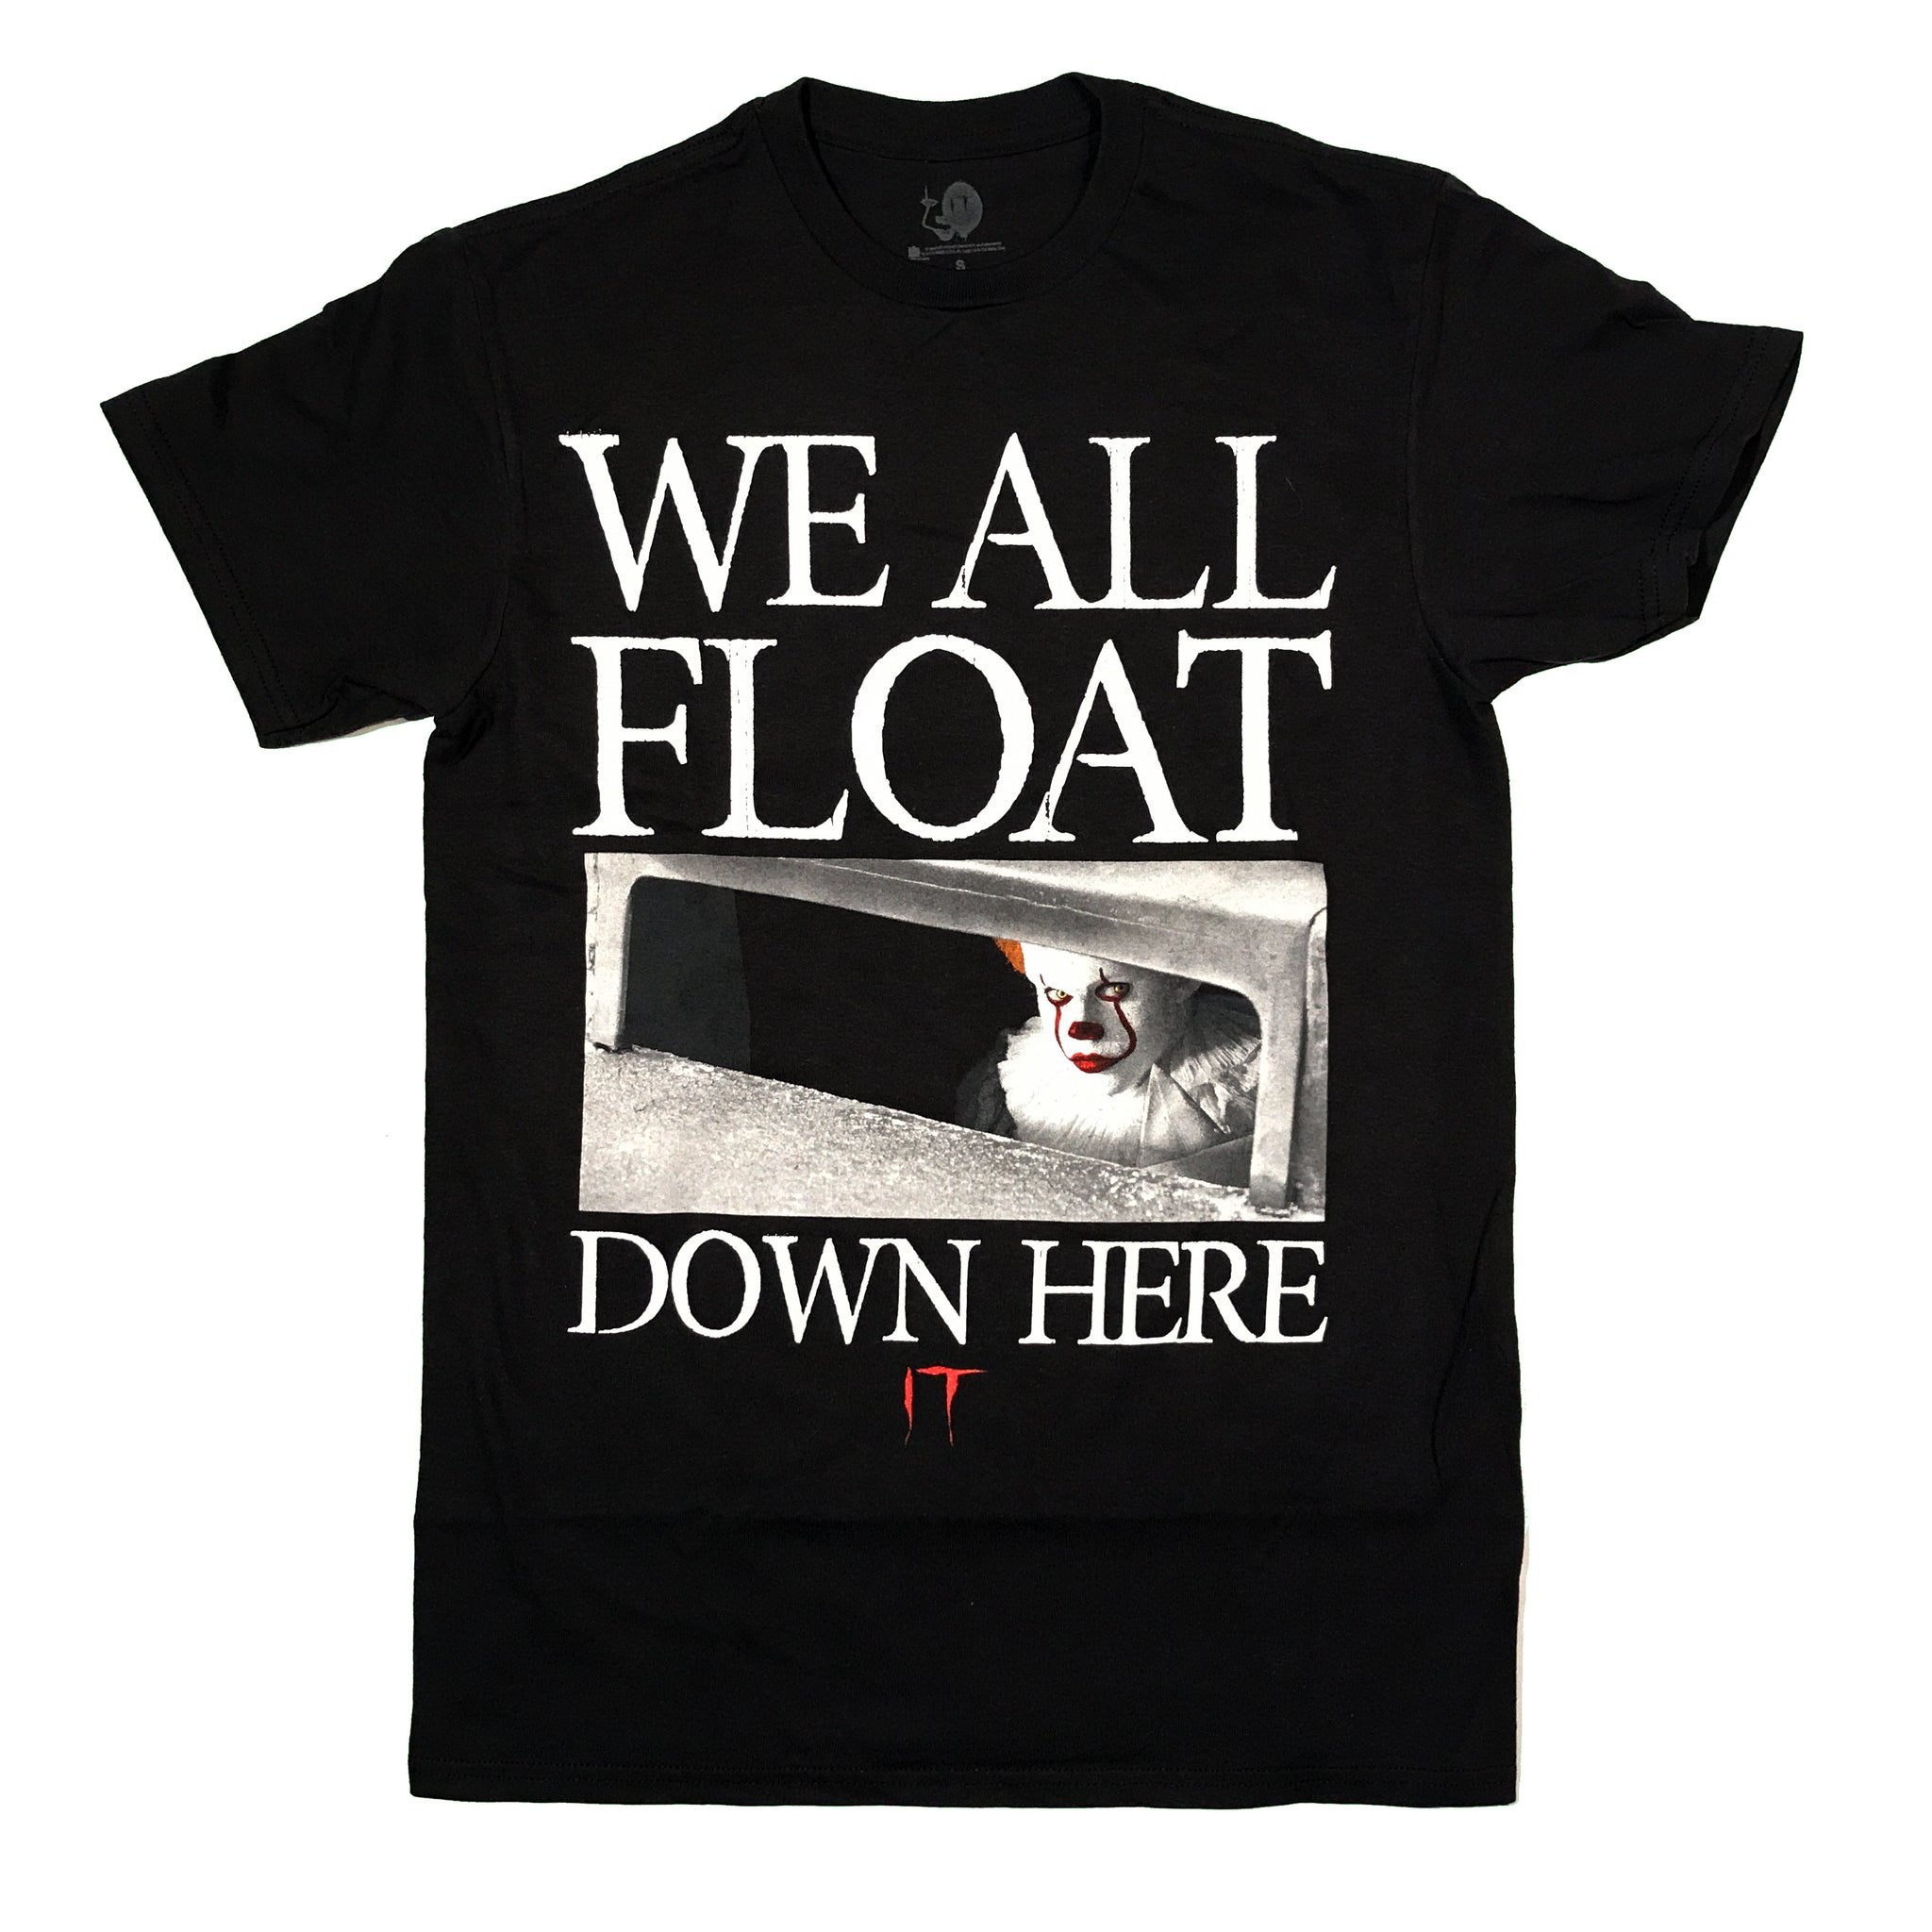 IT Pennywise We All Float Down Here T Shirt Adult Unisex Sizes S to 3XL